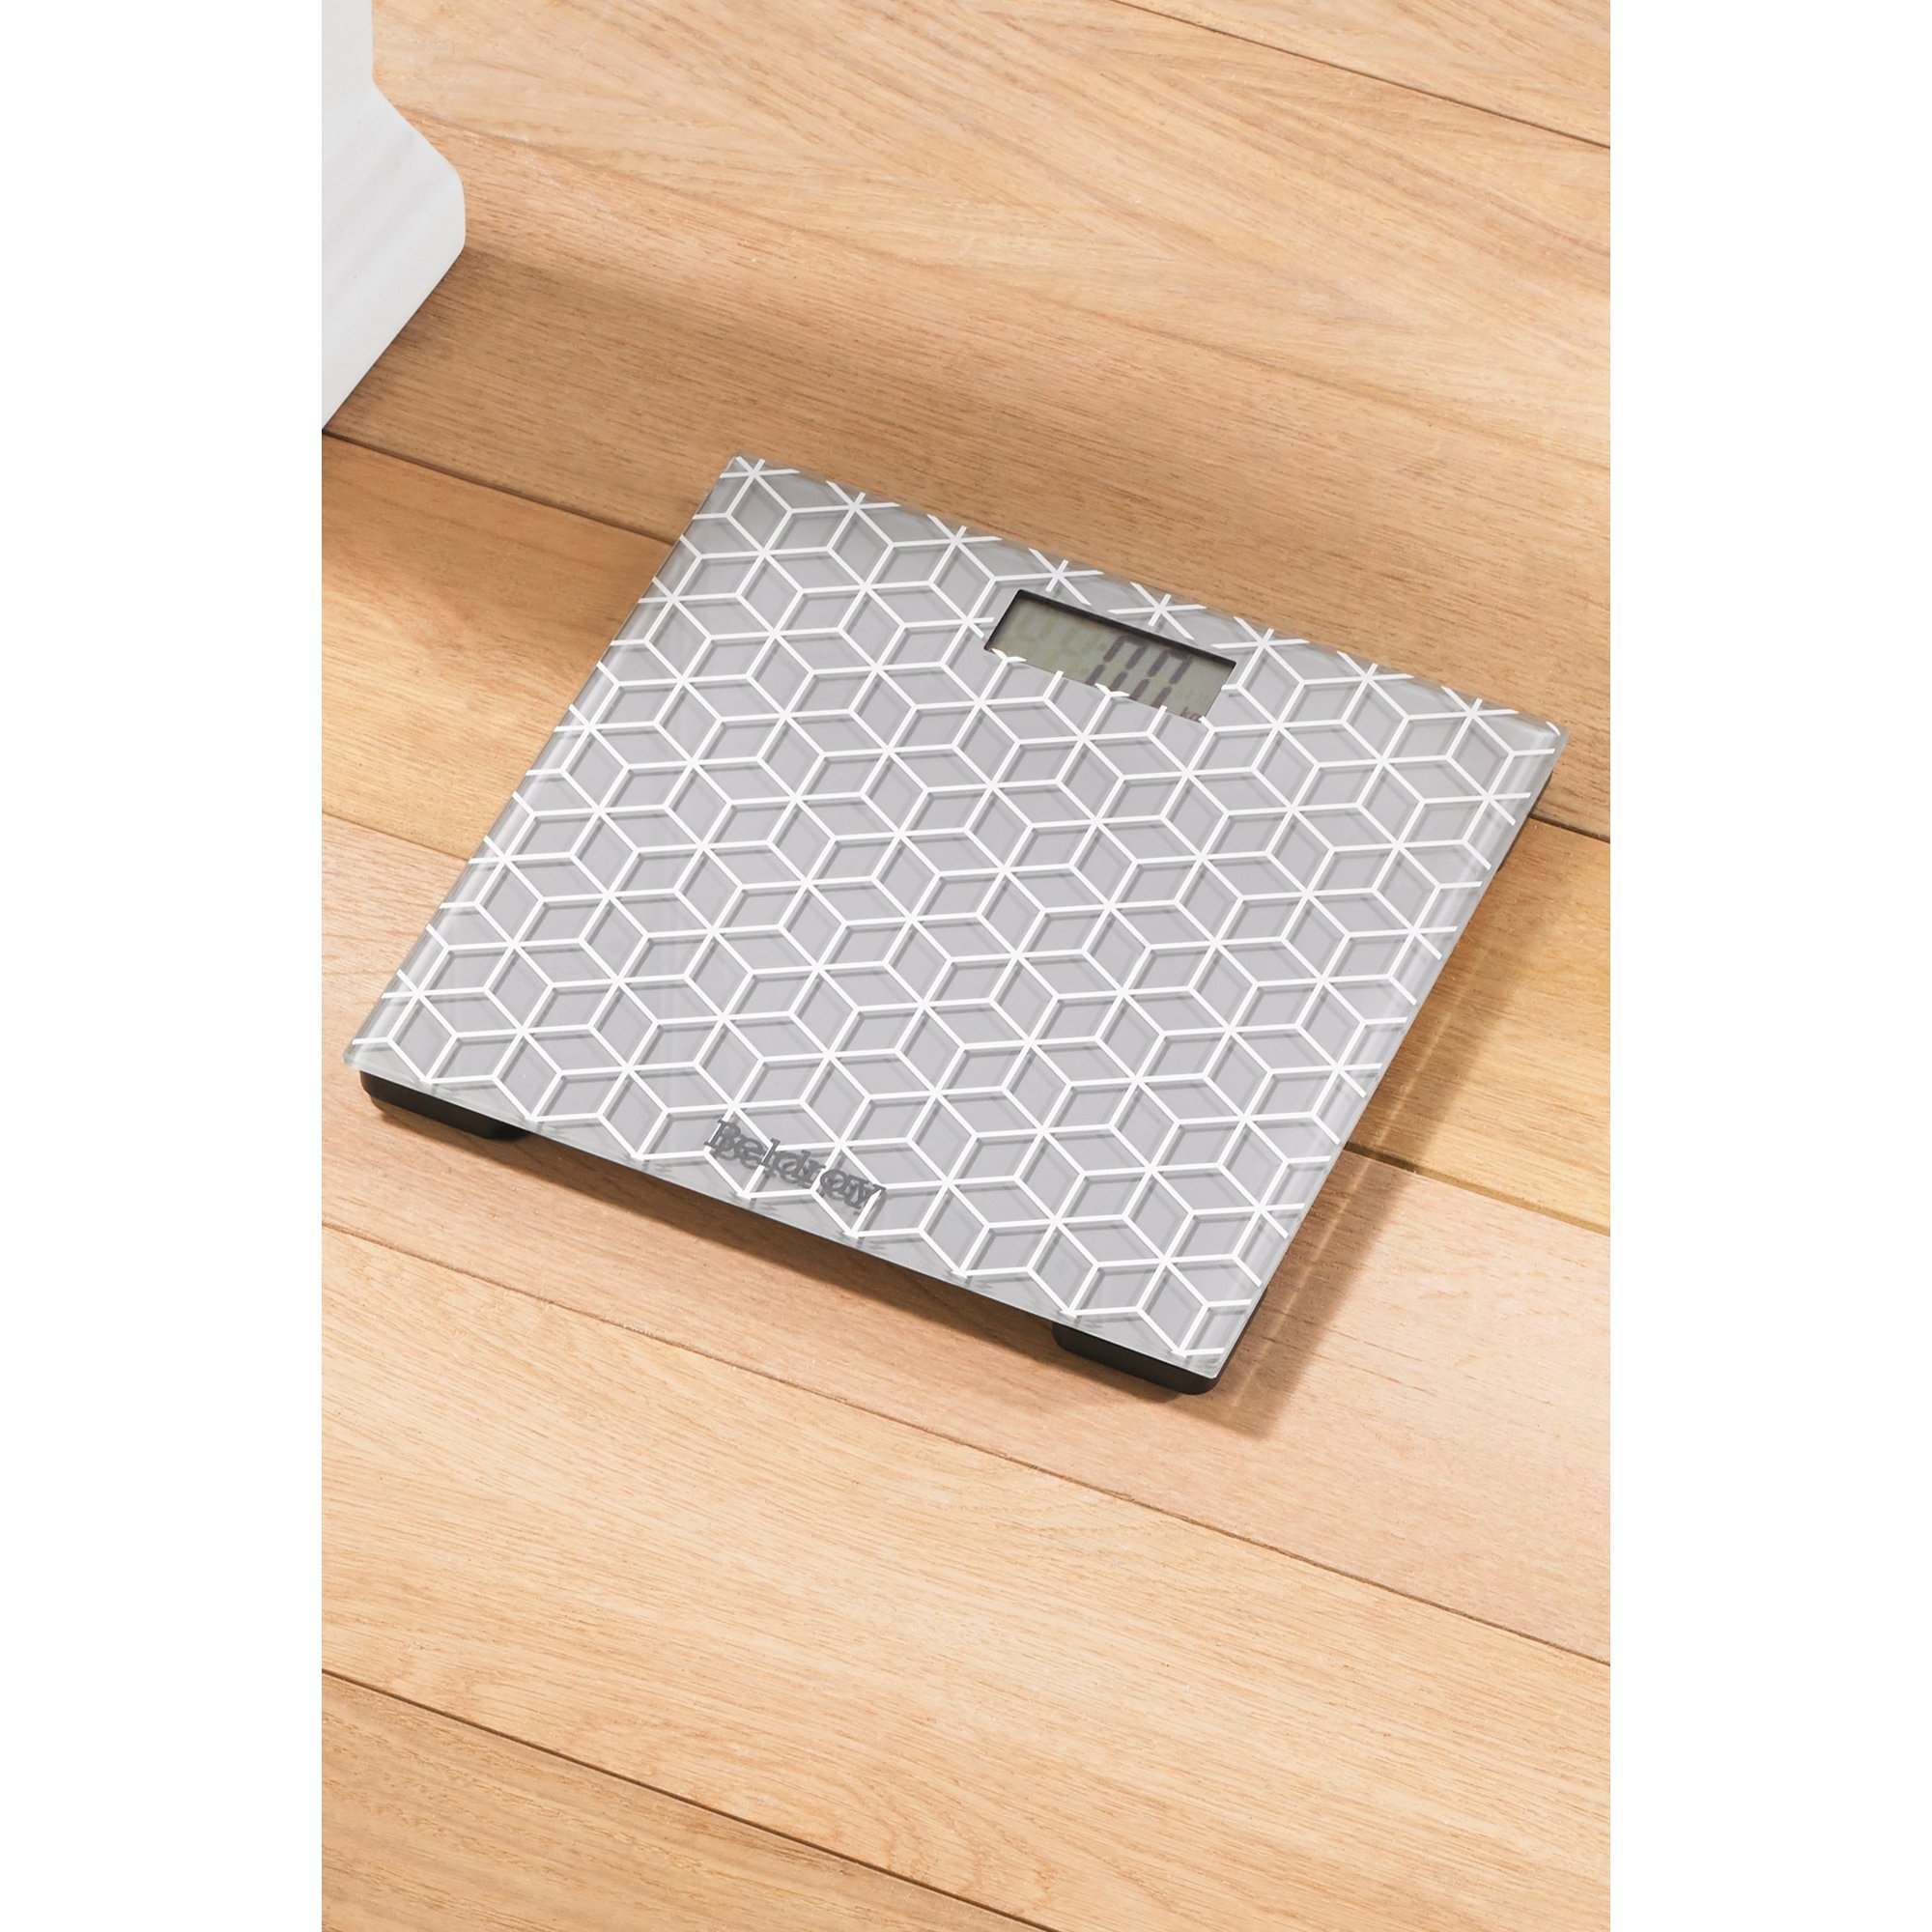 Image of Geometric Bathroom Scales